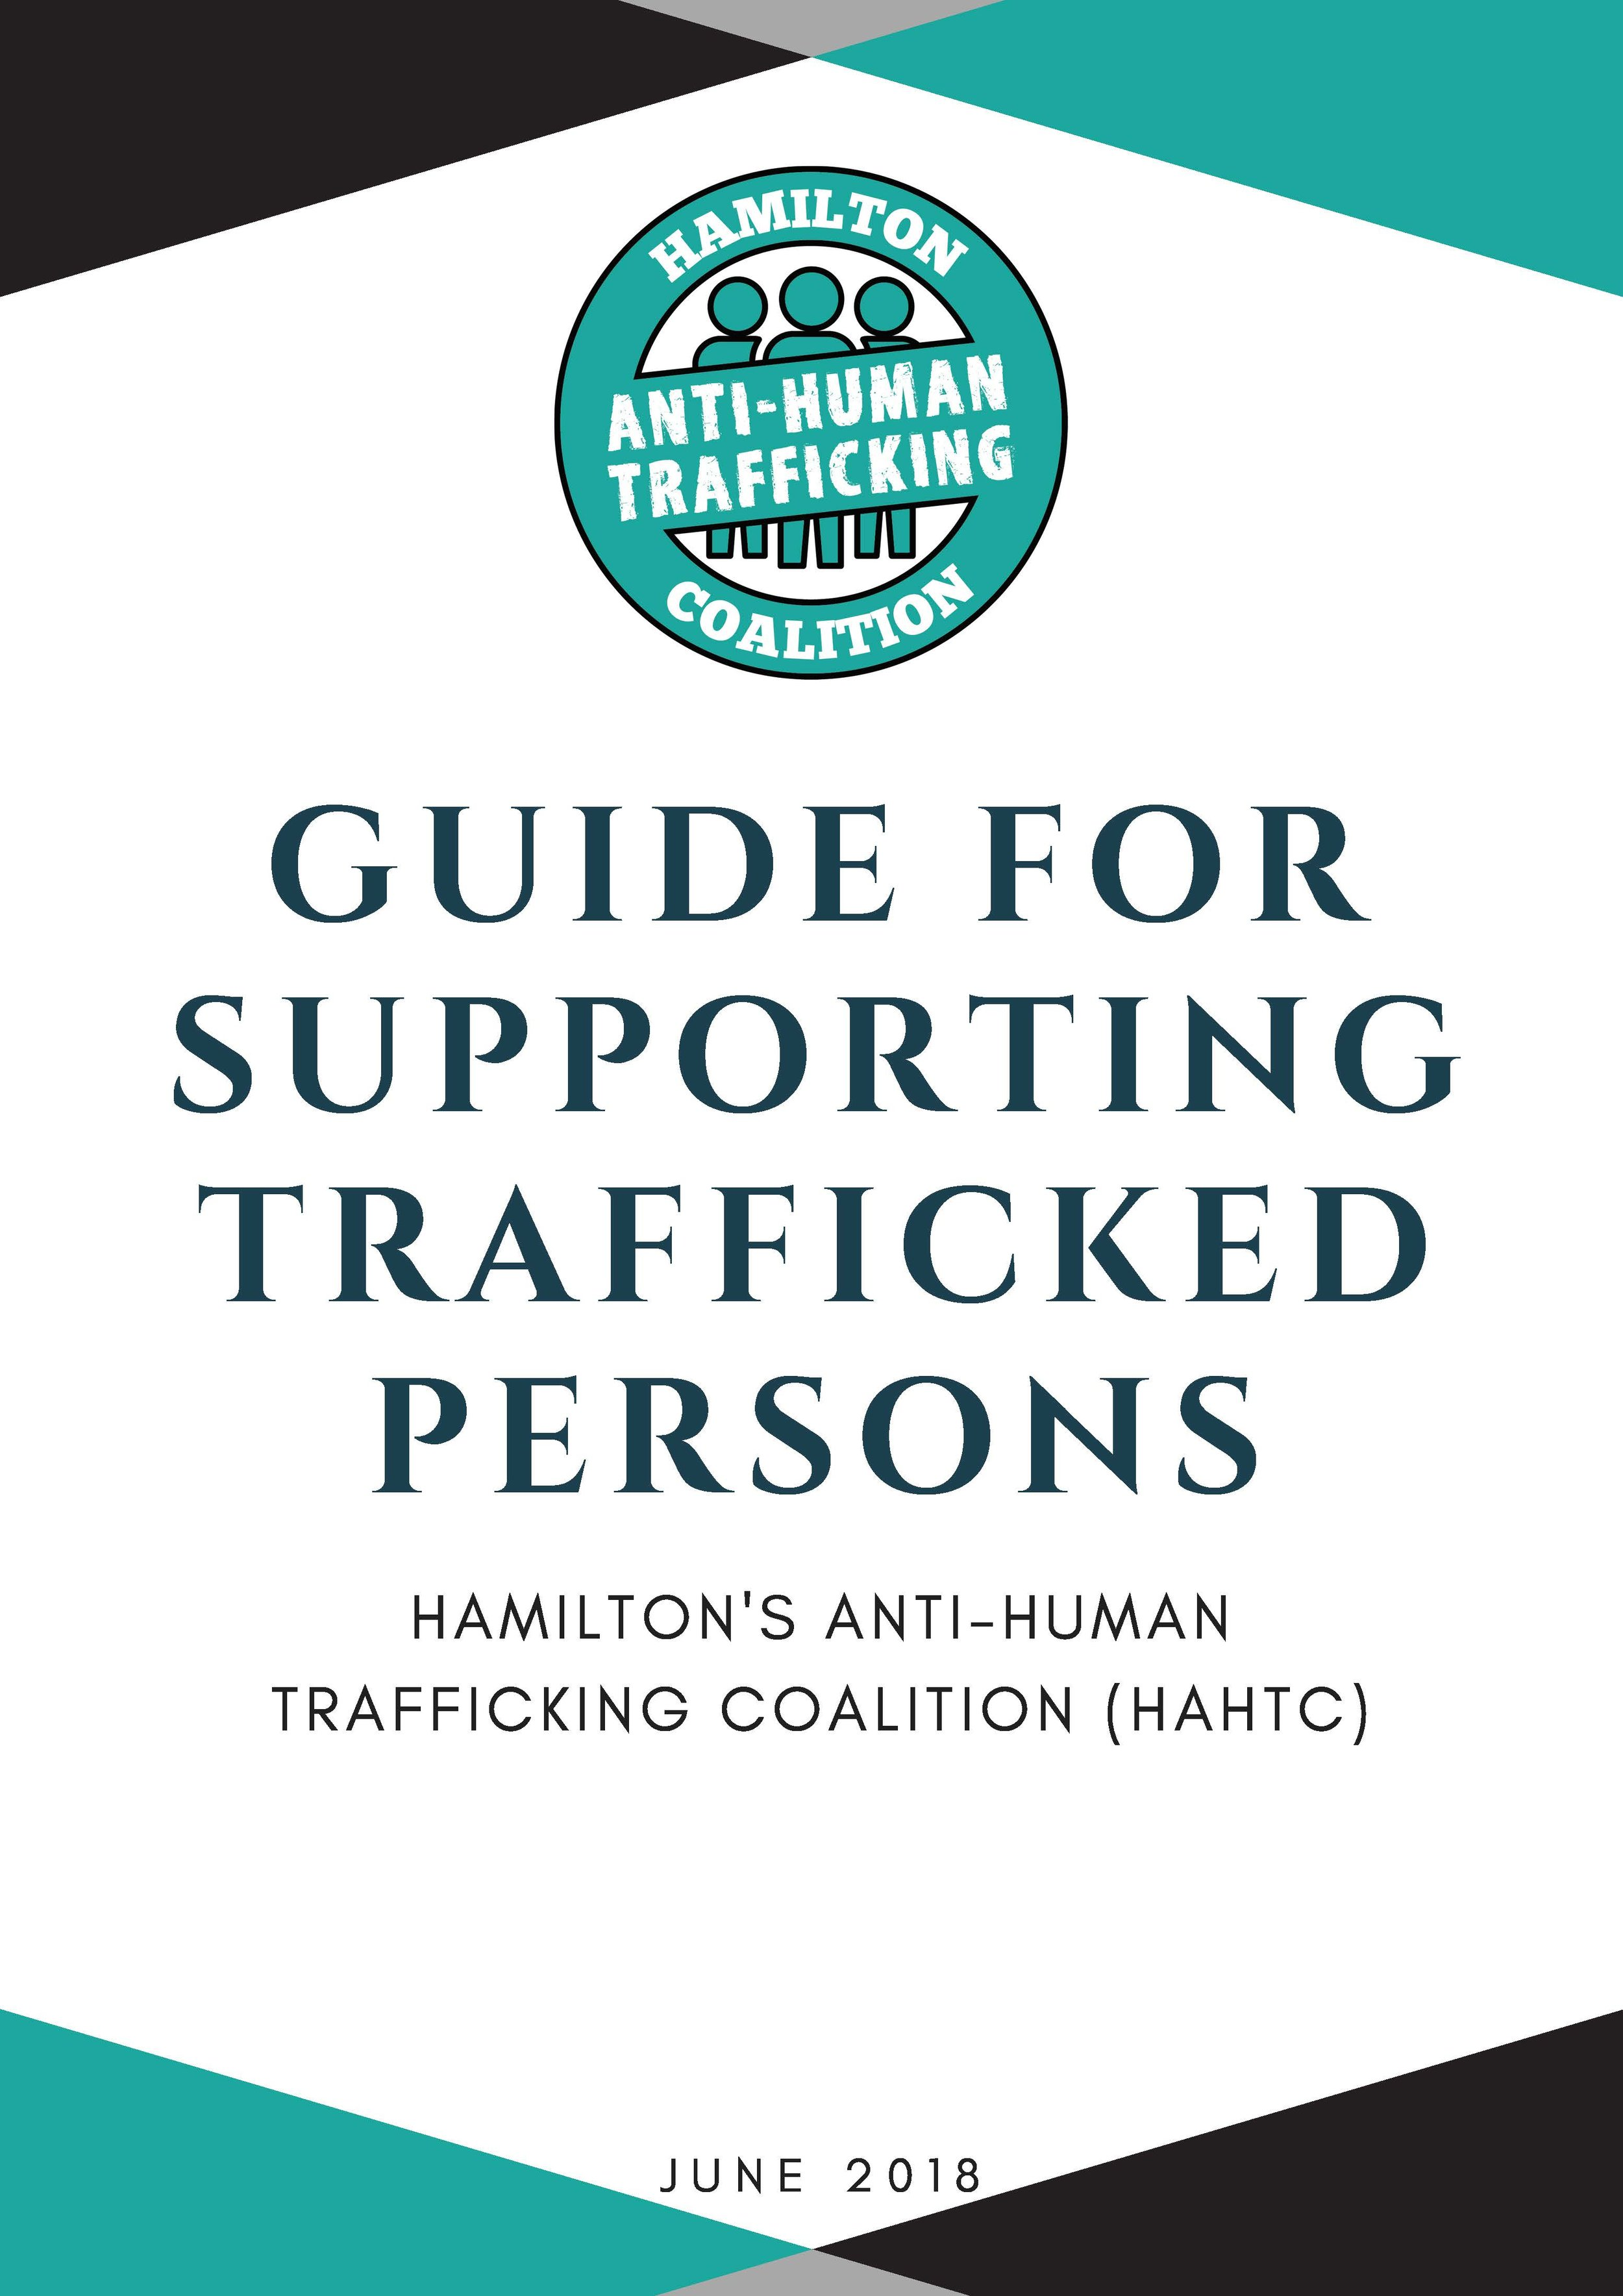 HAHTC Guide For Supporting Trafficked Persons June 2018.jpg